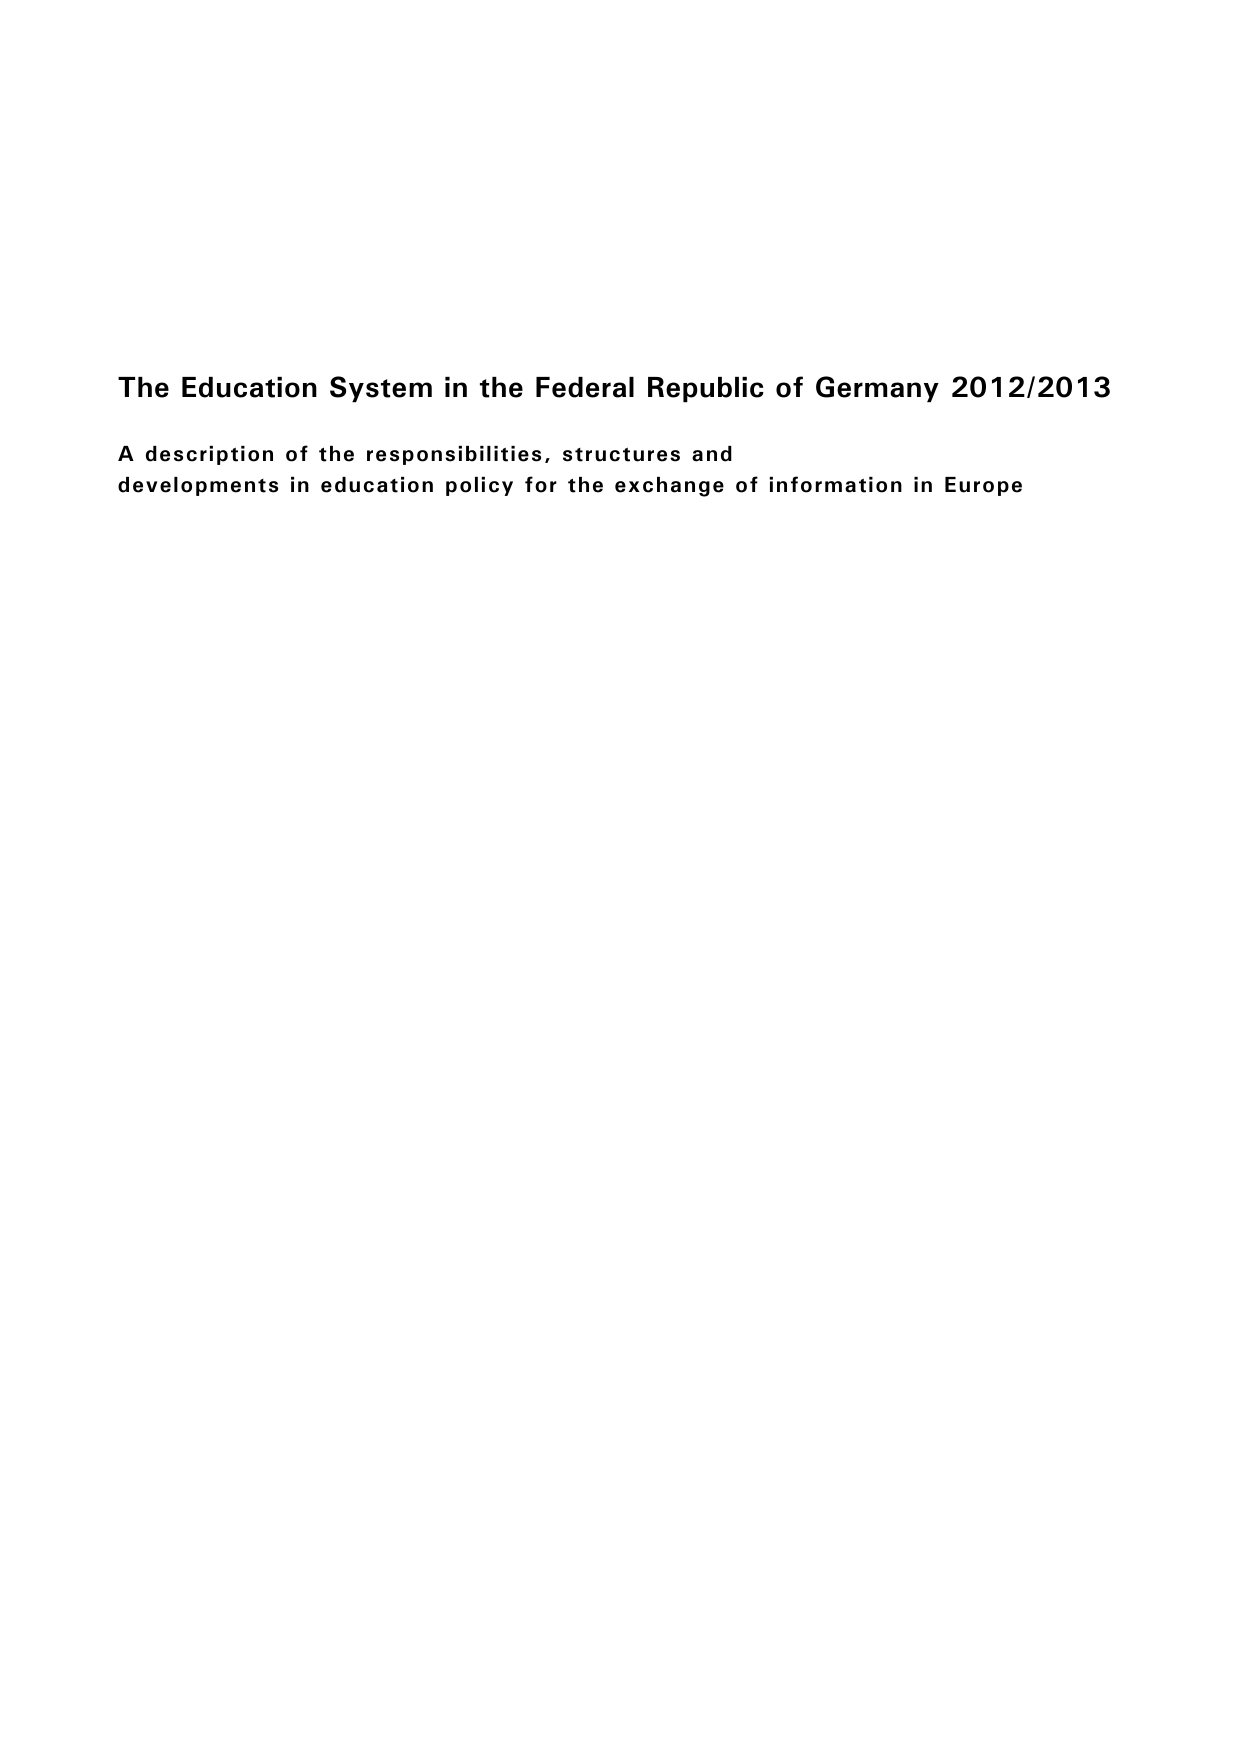 The Education System in the Federal Republic of Germany 2012/2013